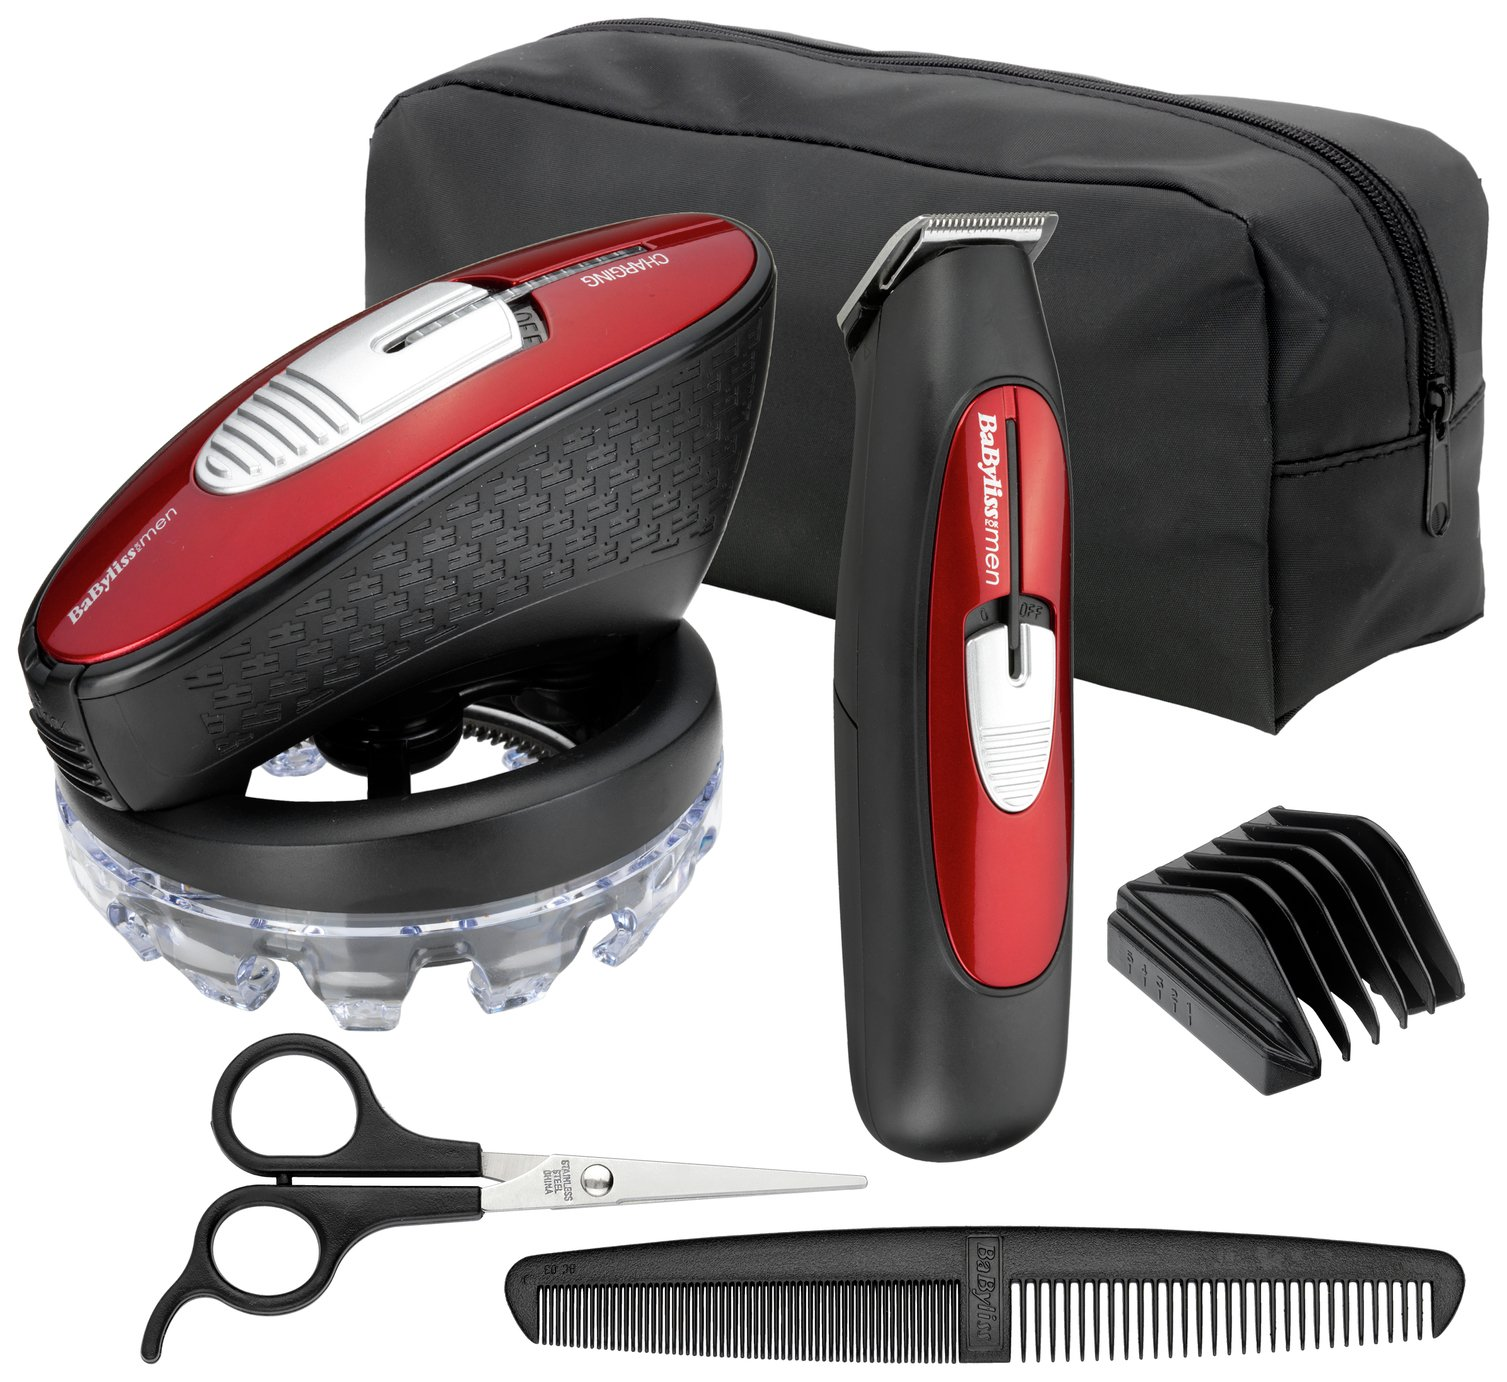 BaByliss For Men Super Crew Cut Hair Clipper 7565U